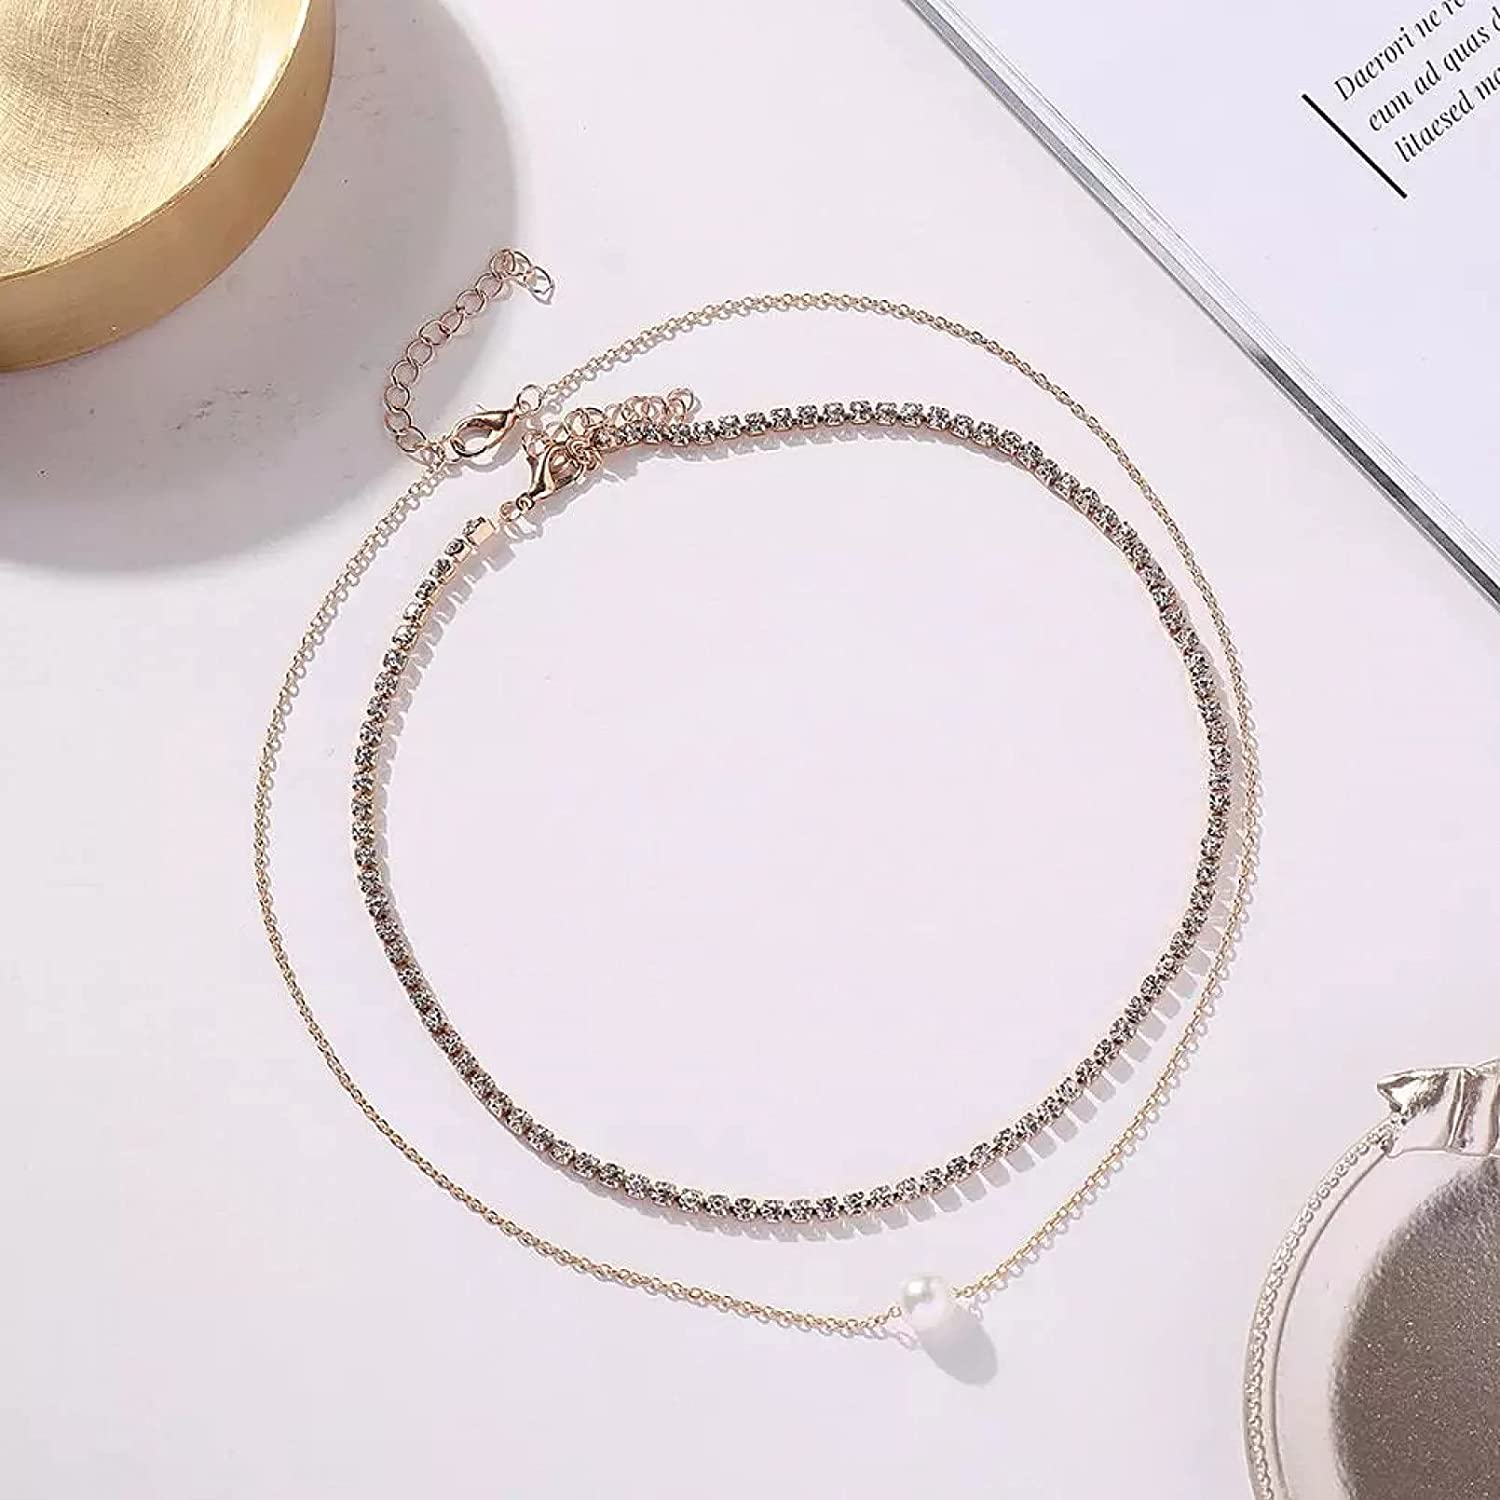 necklace Pendant Jewelry Minilist Crystal Chain Link Choker Necklace for female Bohemia Clavicle Chain Choker Pearl Pendant Necklace Neck Collar Halloween Christmas Valentine's Day Birthday Gift